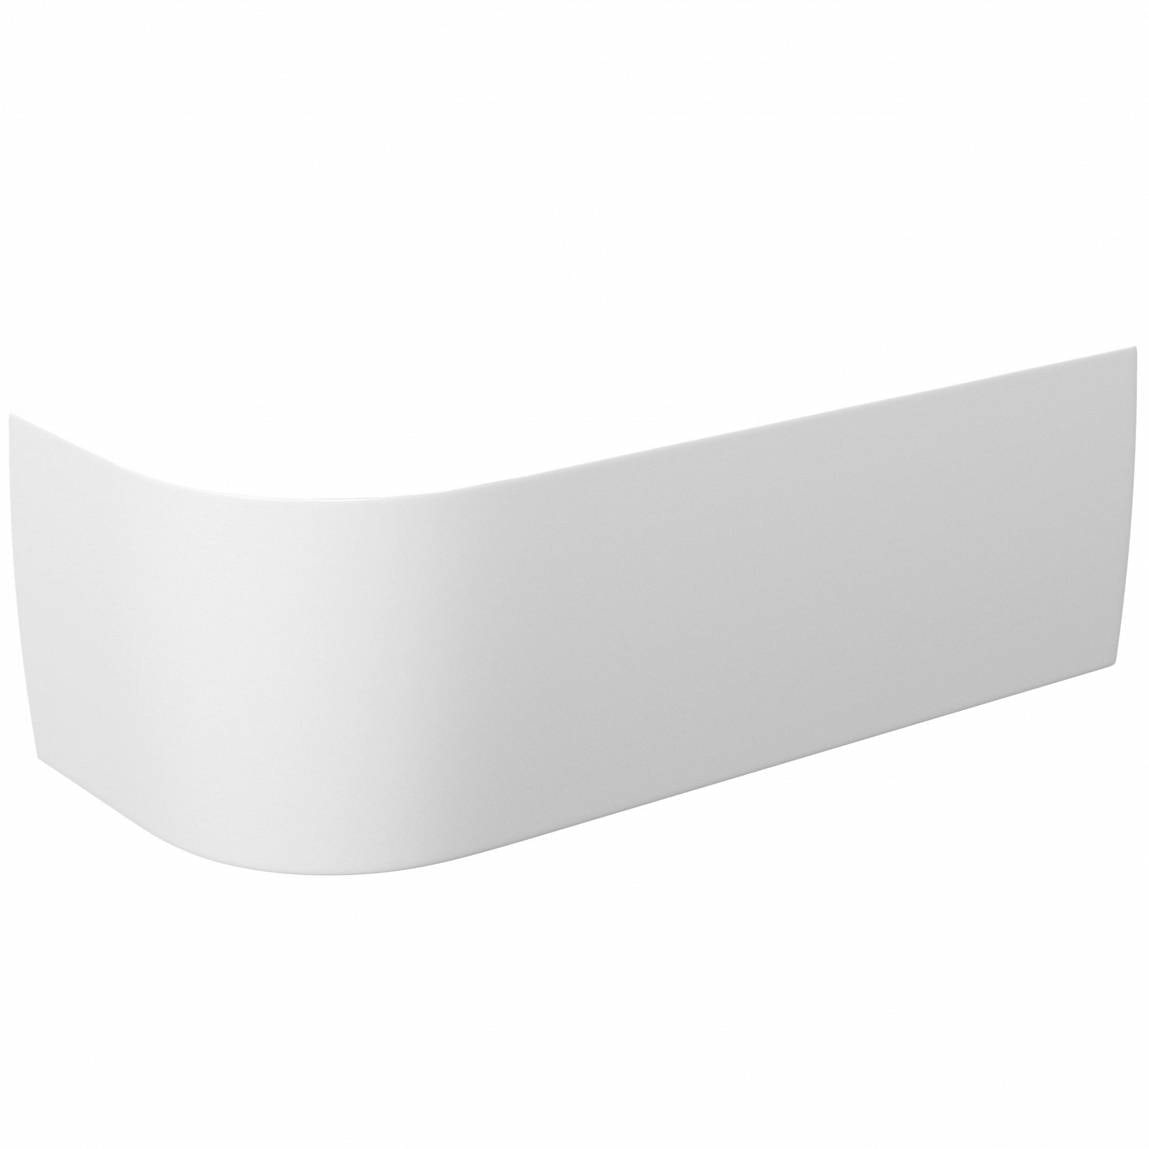 Orchard Elsdon D shaped right handed single ended bath panel